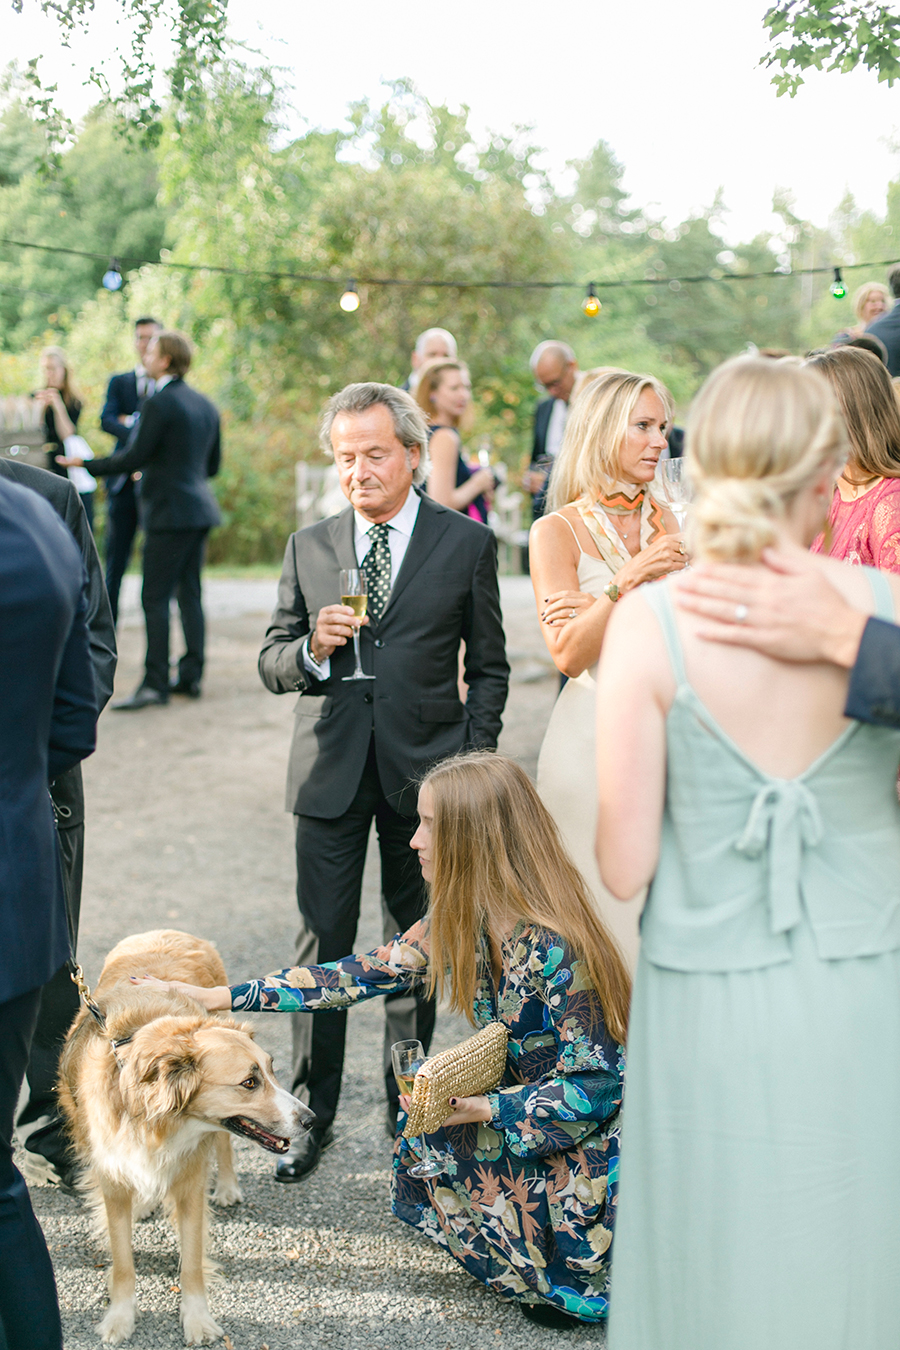 rebeccahansson.com-wedding-Elin-and-Peder-august-13th-2016-(586).jpg